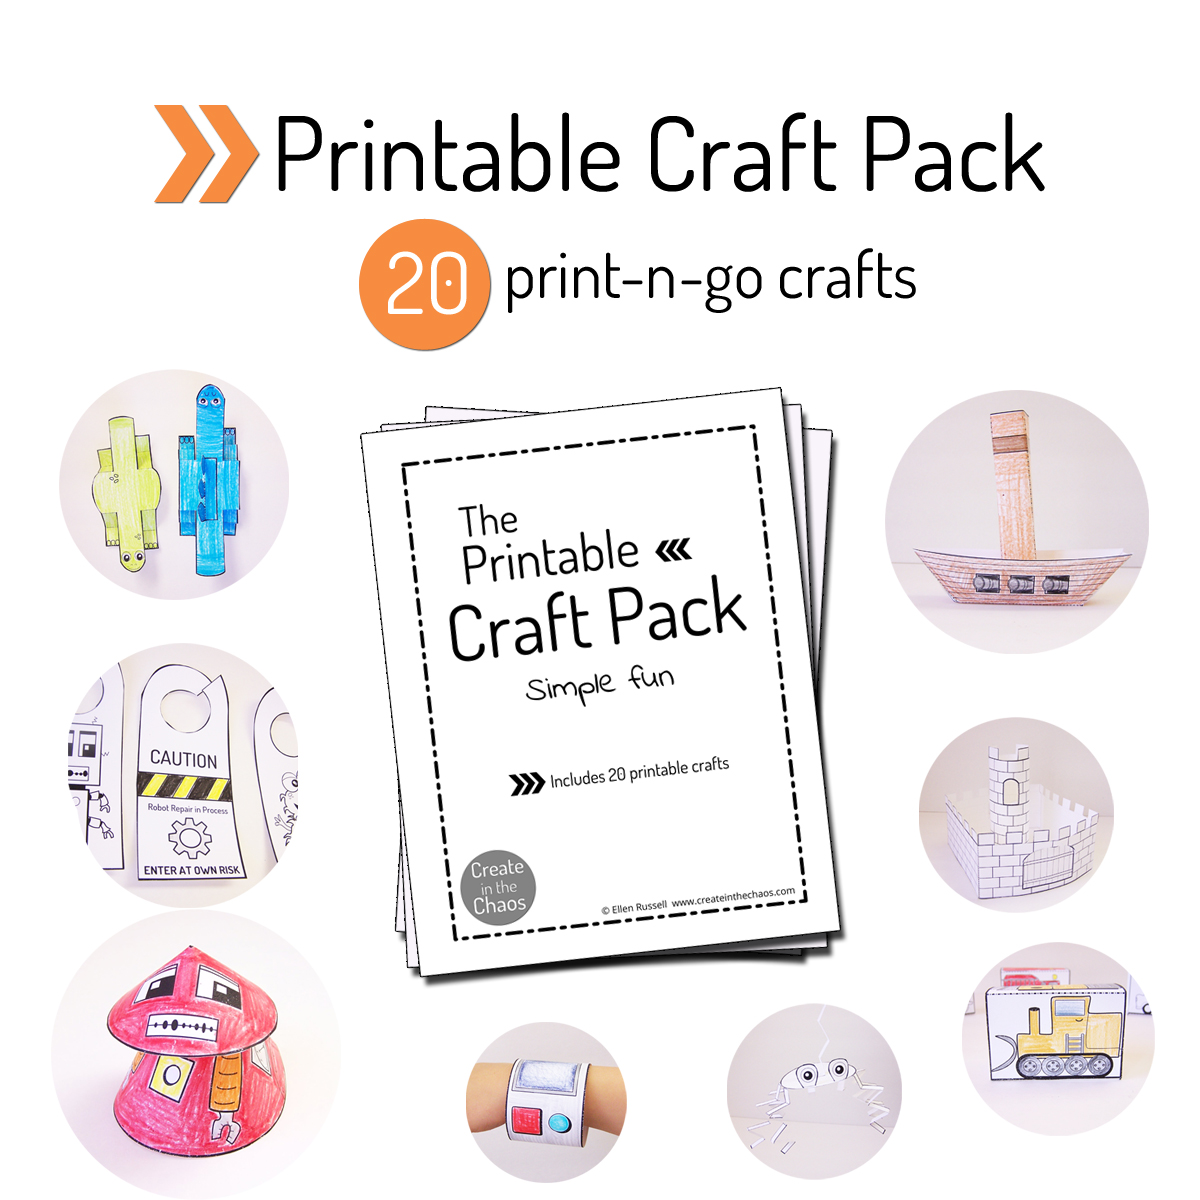 Awesome pack of 20 printable crafts - includes robots, dinosaurs, monsters, and more! www.createinthechaos.com